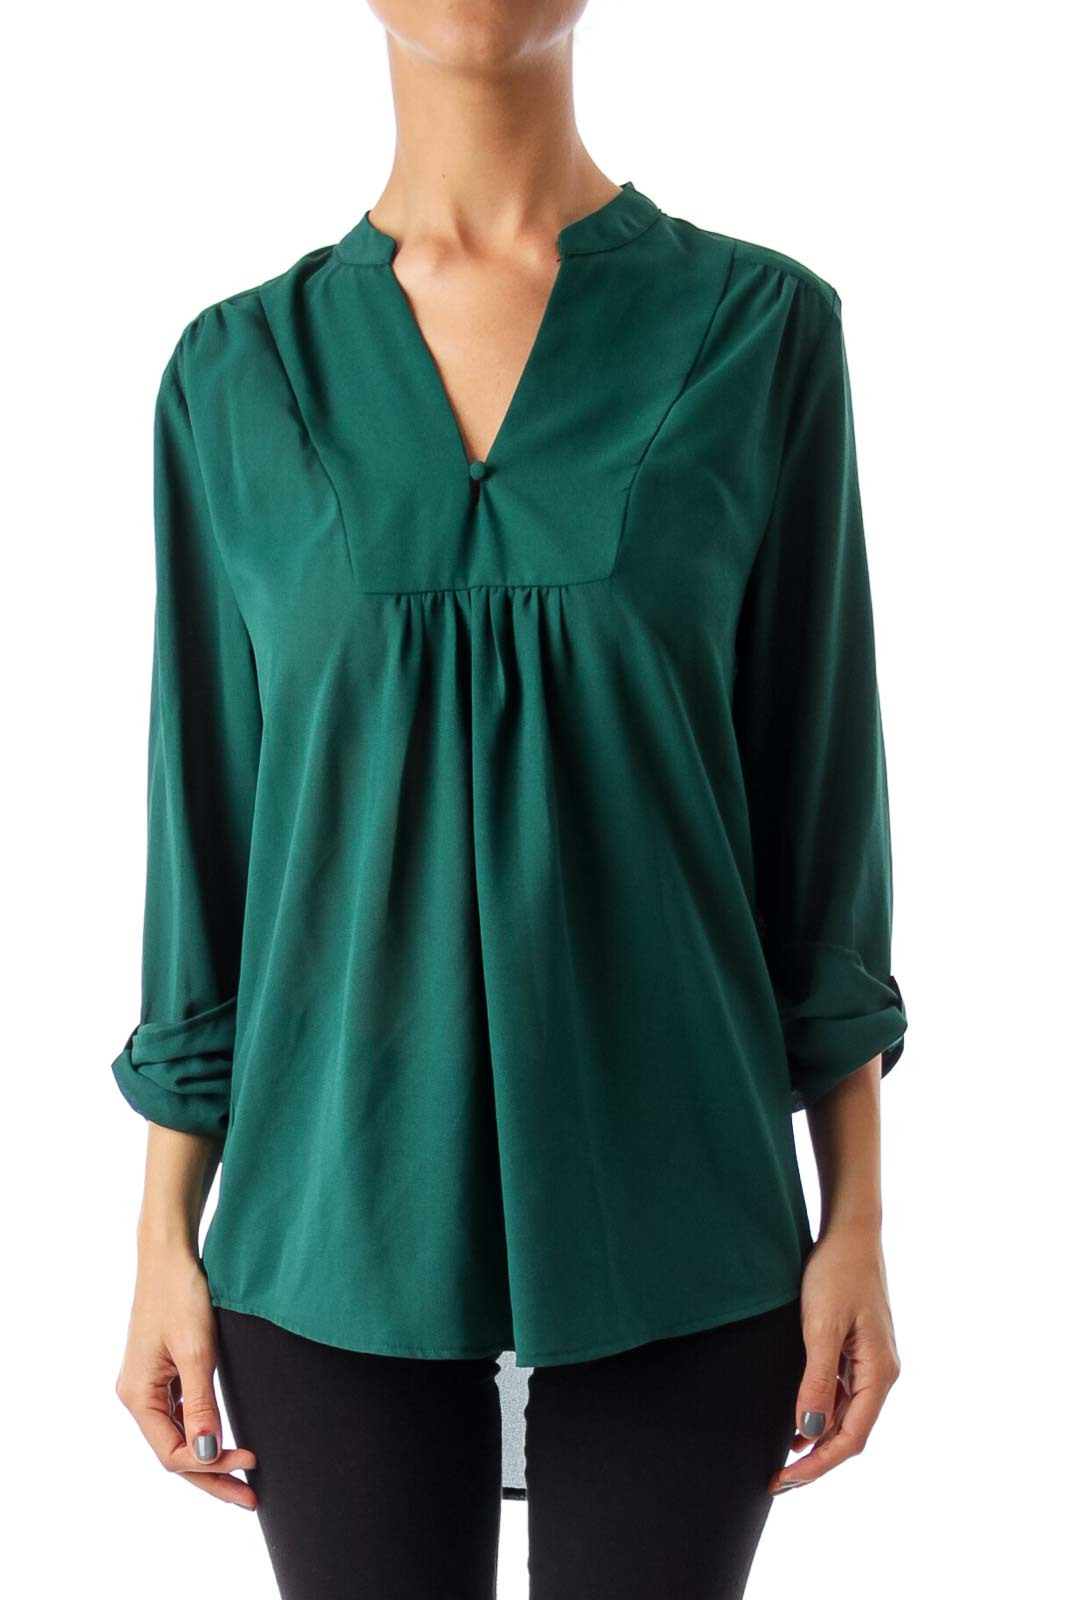 Green V-Neck Jersey Top Front